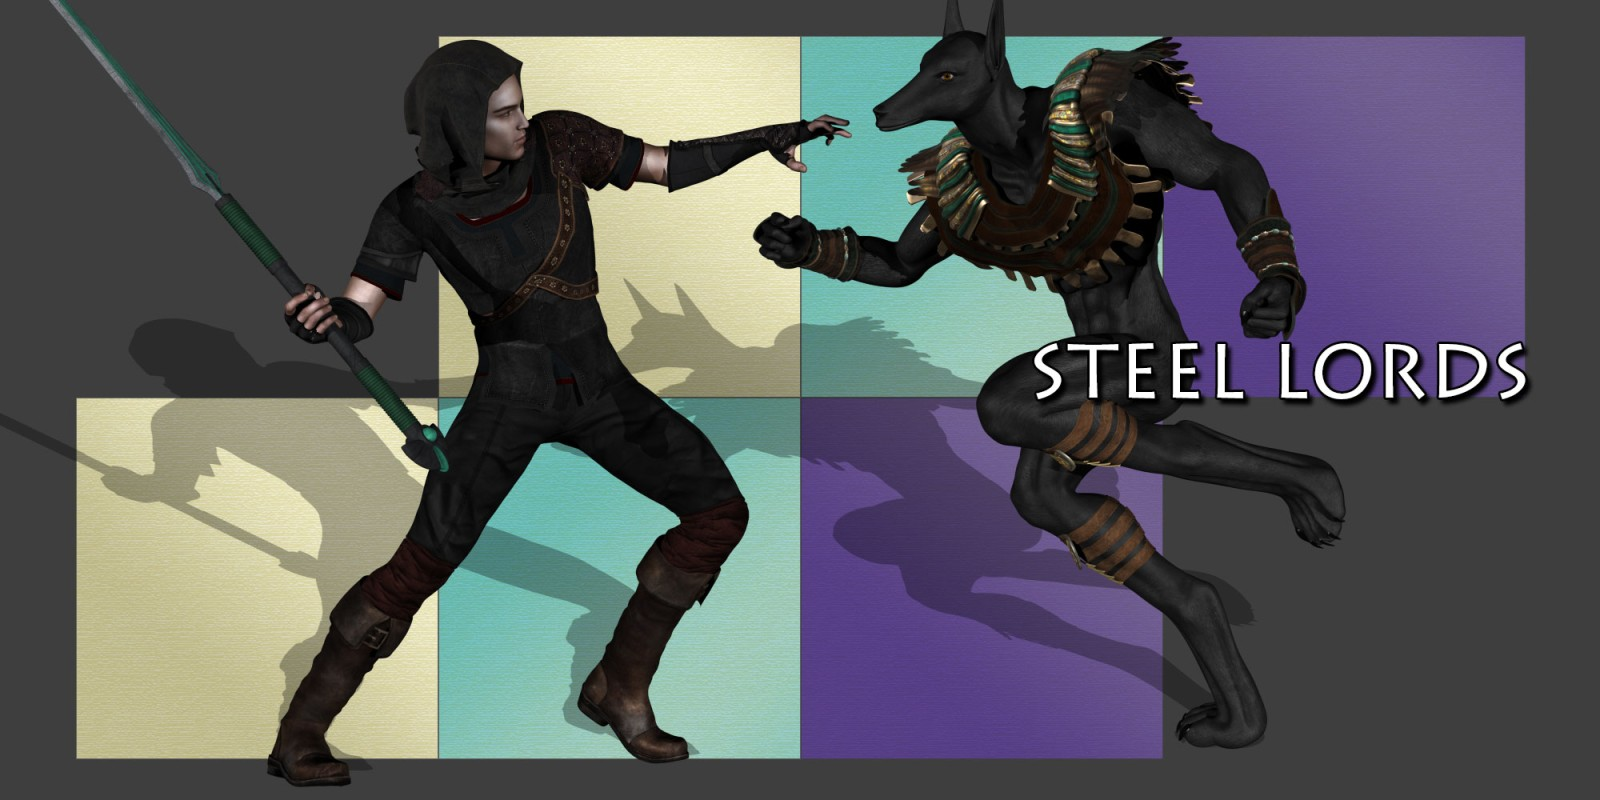 STEEL LORDS